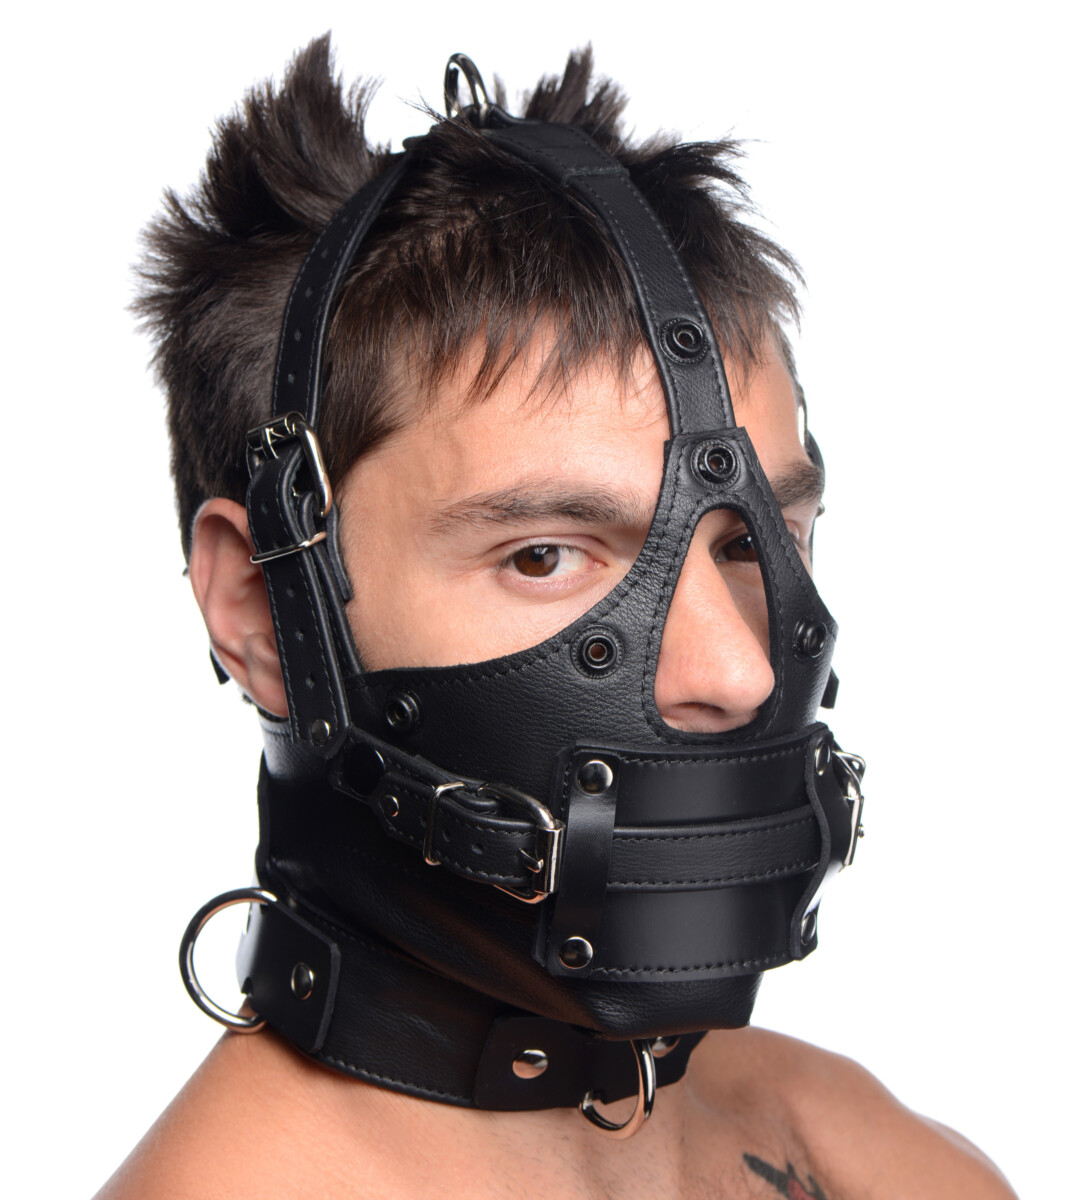 Leather Head Harness with Removeable Gag - P4aZoJDL 4b6084e5 scaled